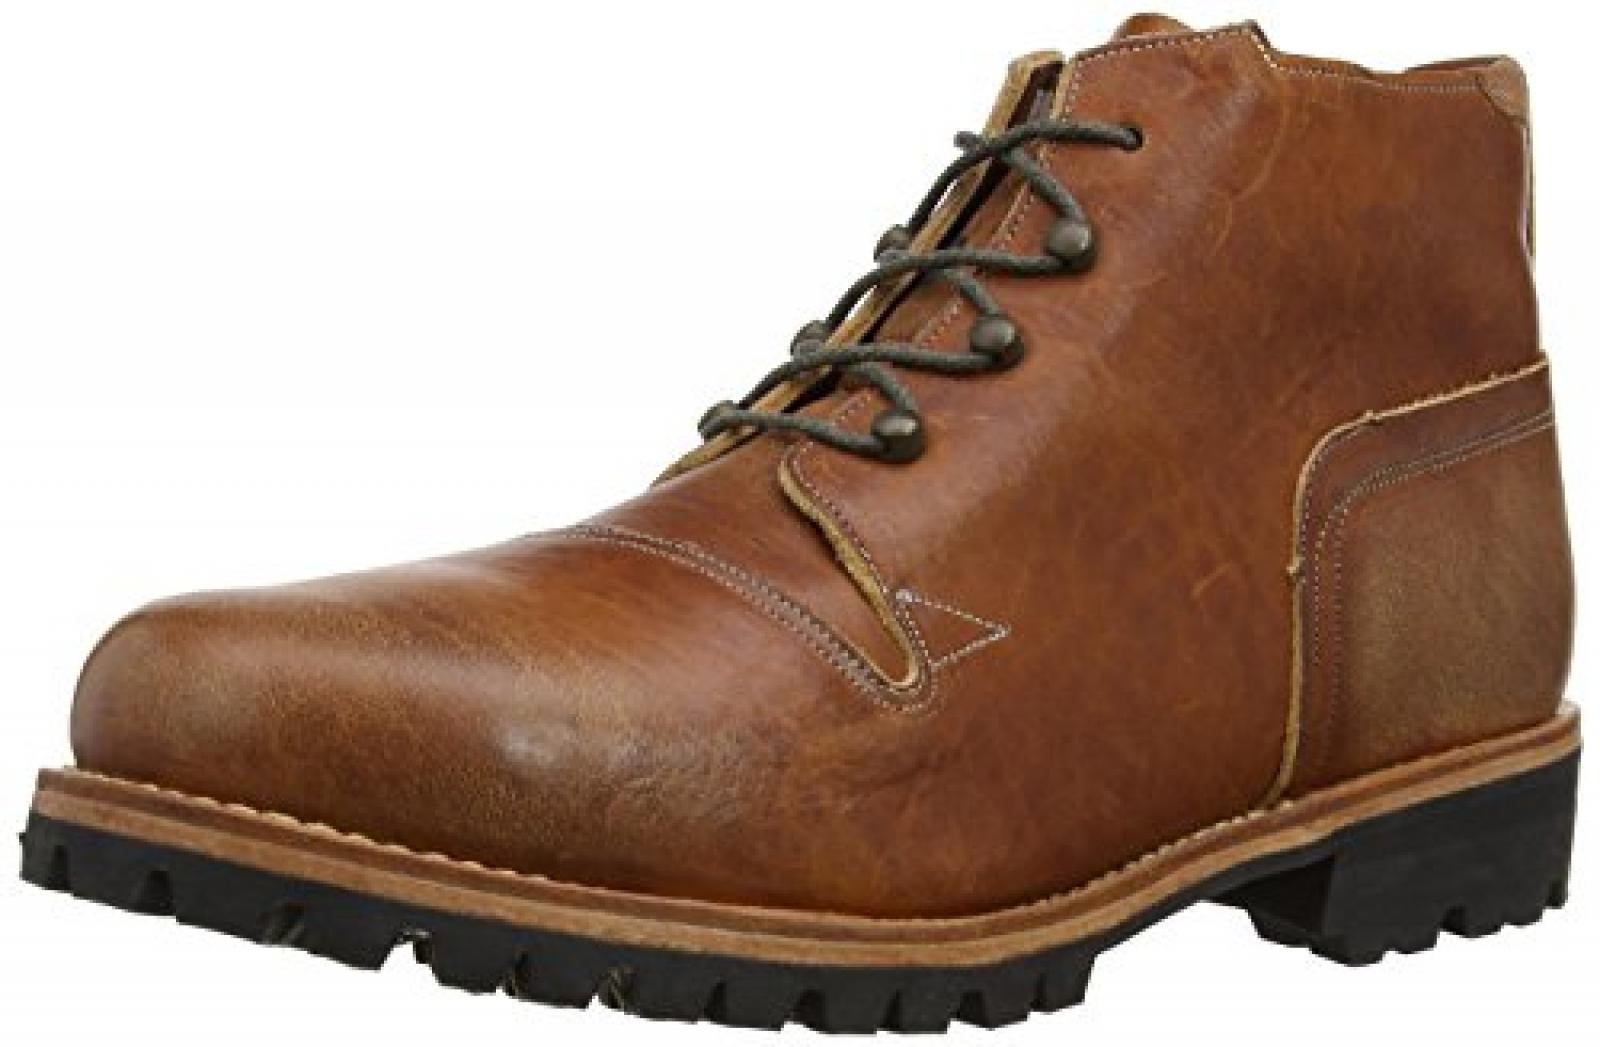 Timberland Boot Company Gyw Tackhead Boots